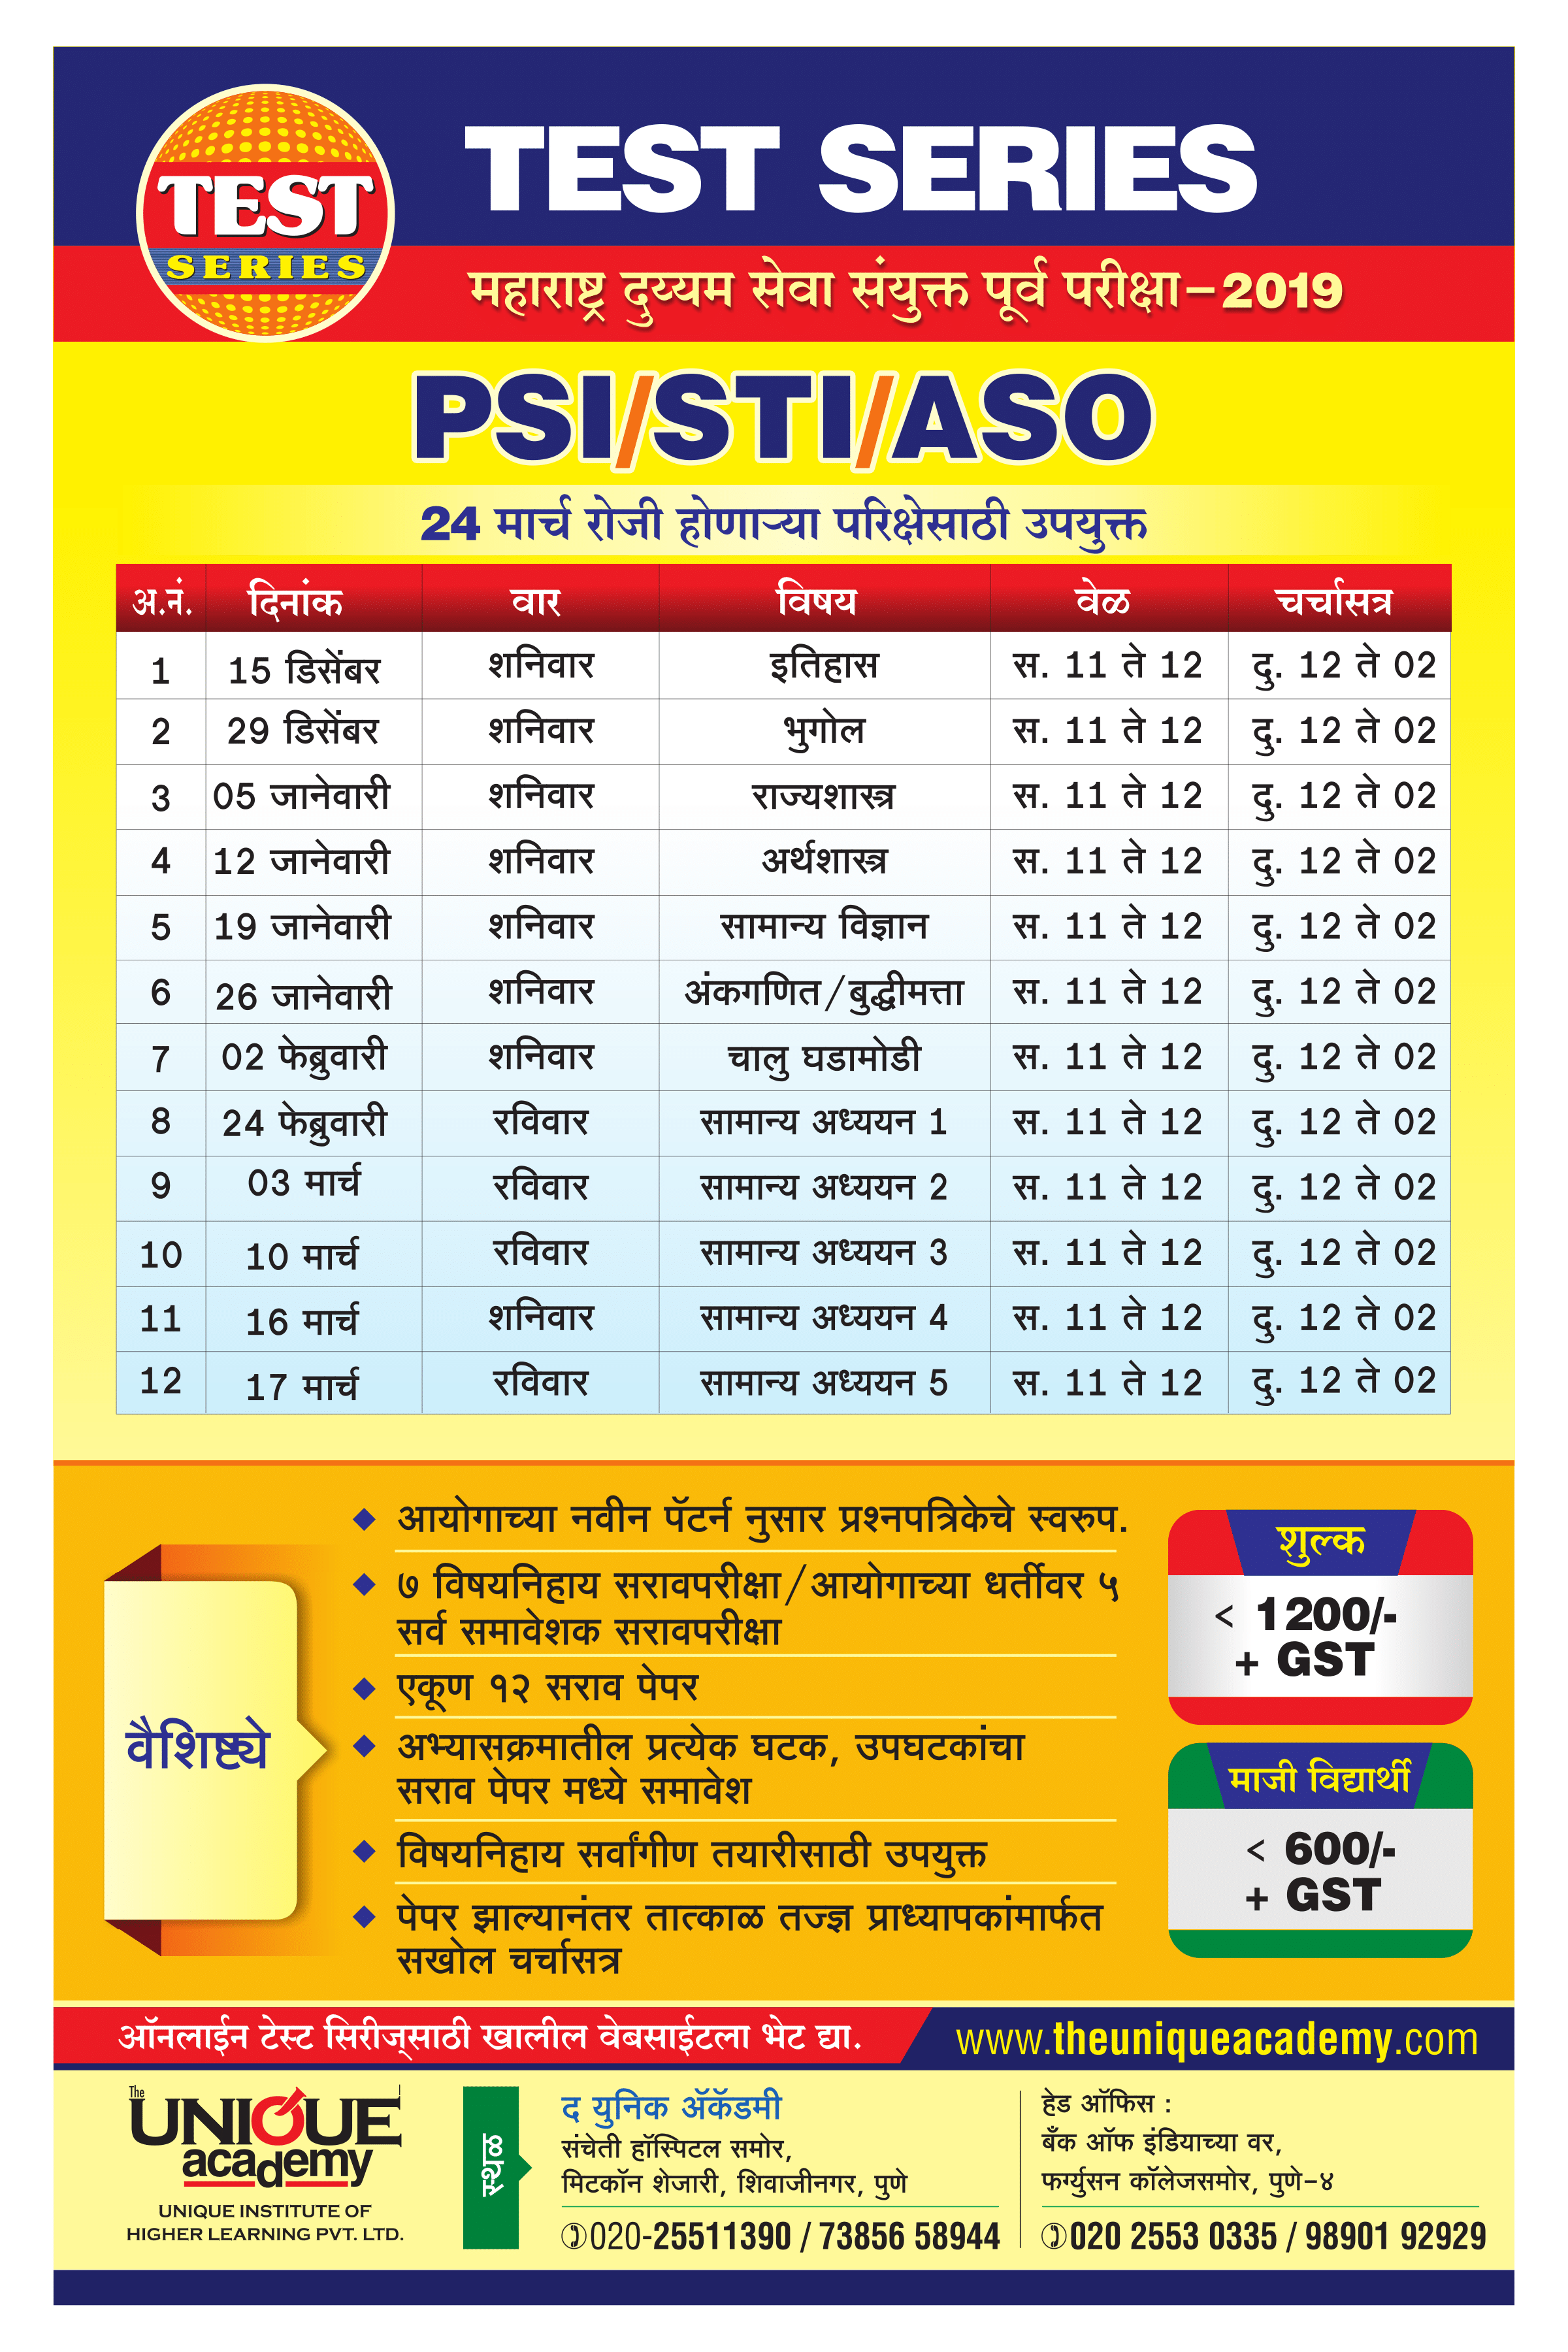 mpsc online test series 2019